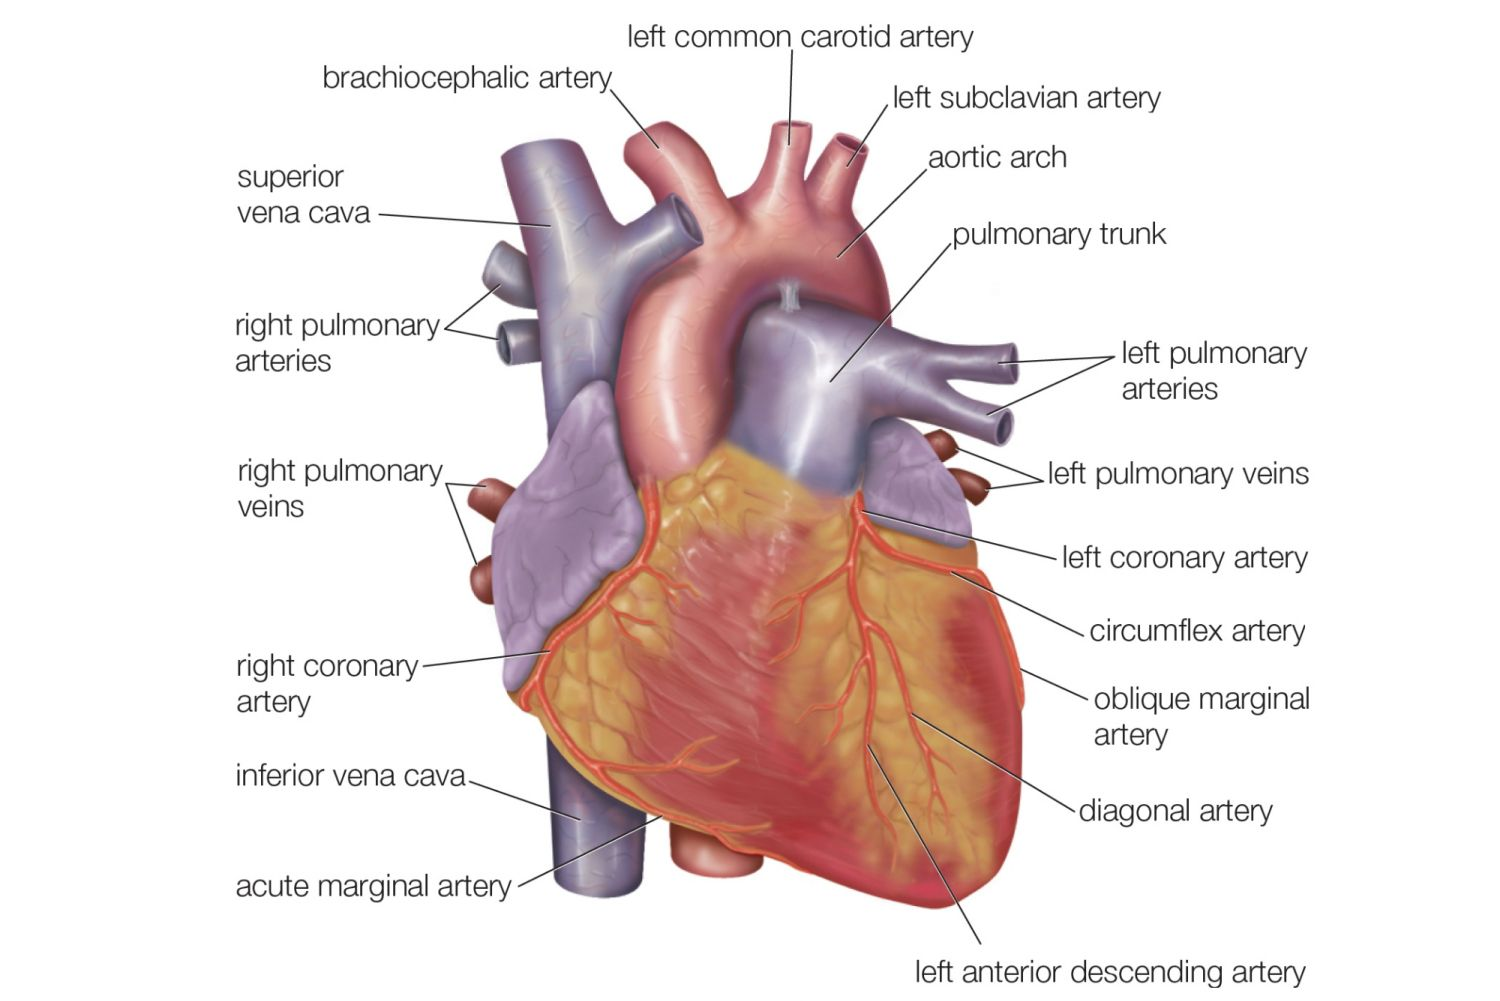 anatomy and function of the heart image collections human